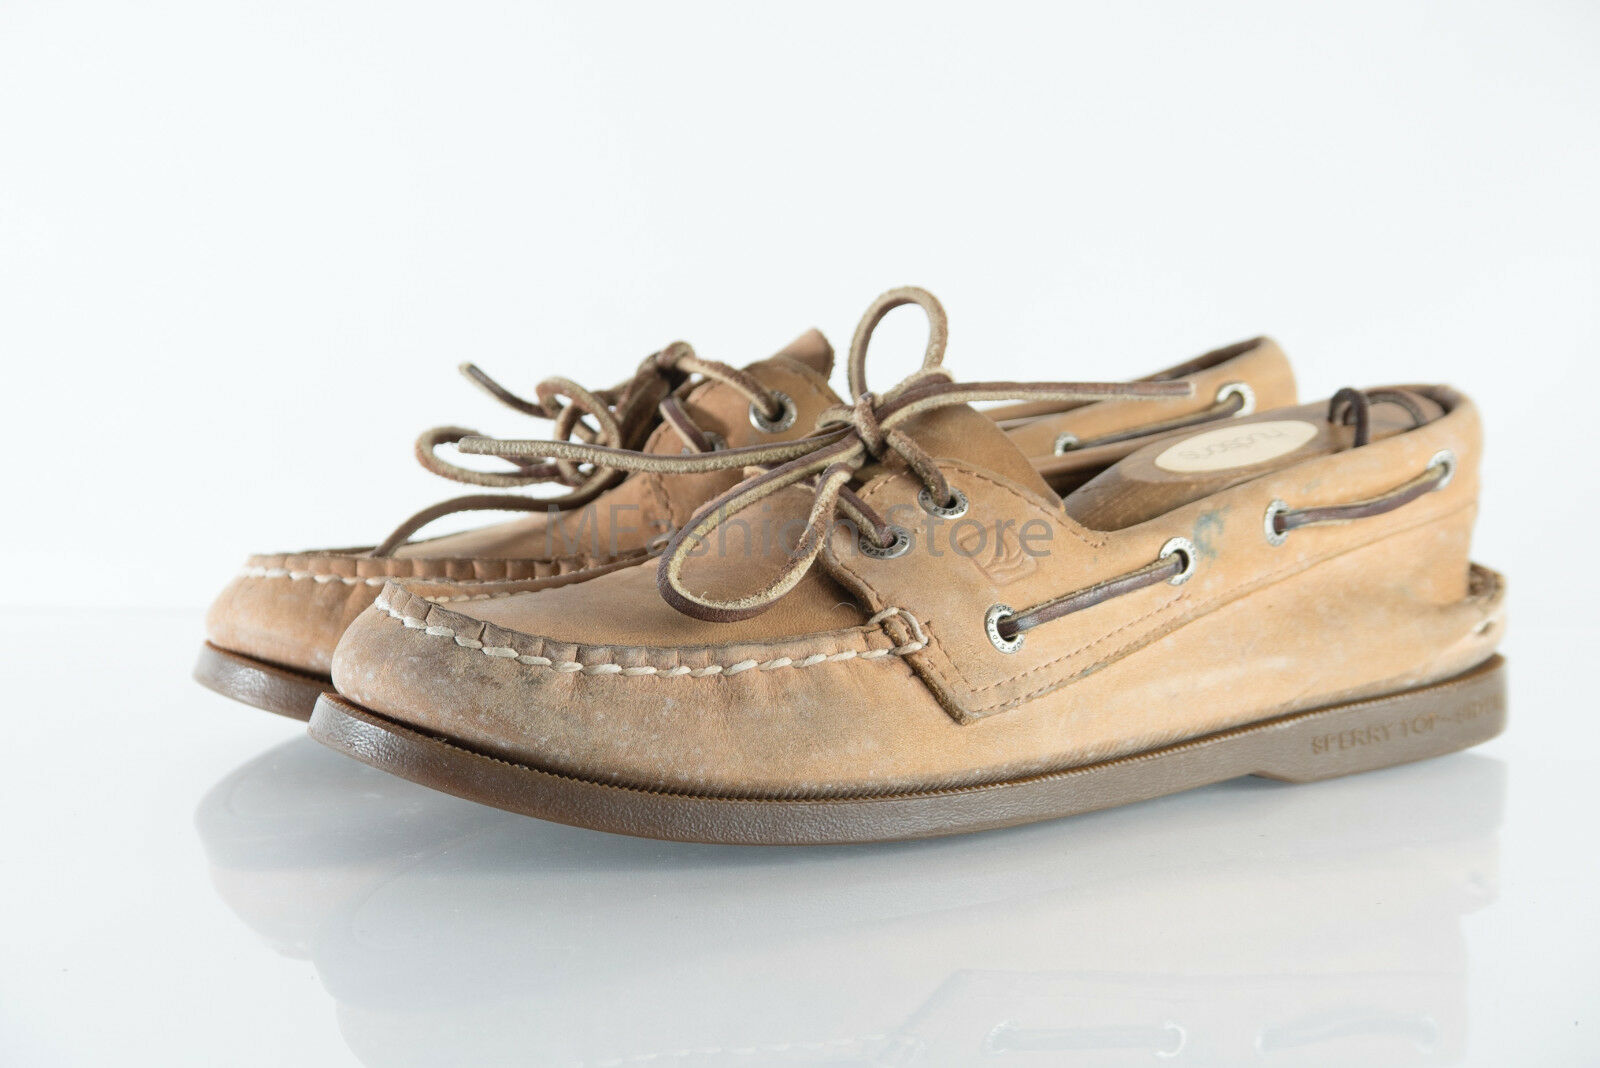 Sperry Brown Pelle Upper Lace Up CH08 Uomo Shoe Size US 8M Pre Owned